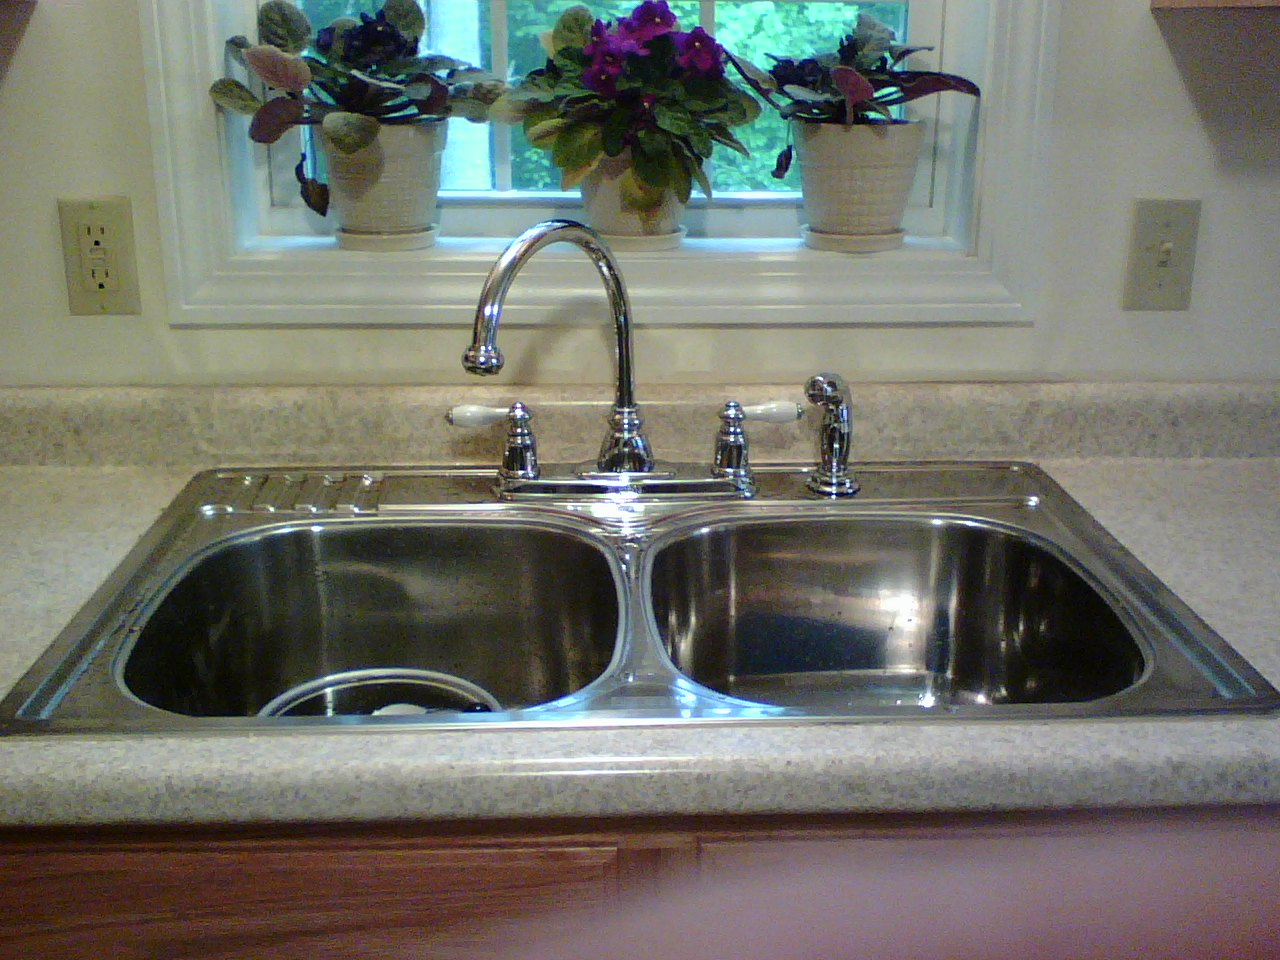 duboard kitchen sink Origin of the kitchen sink analogy